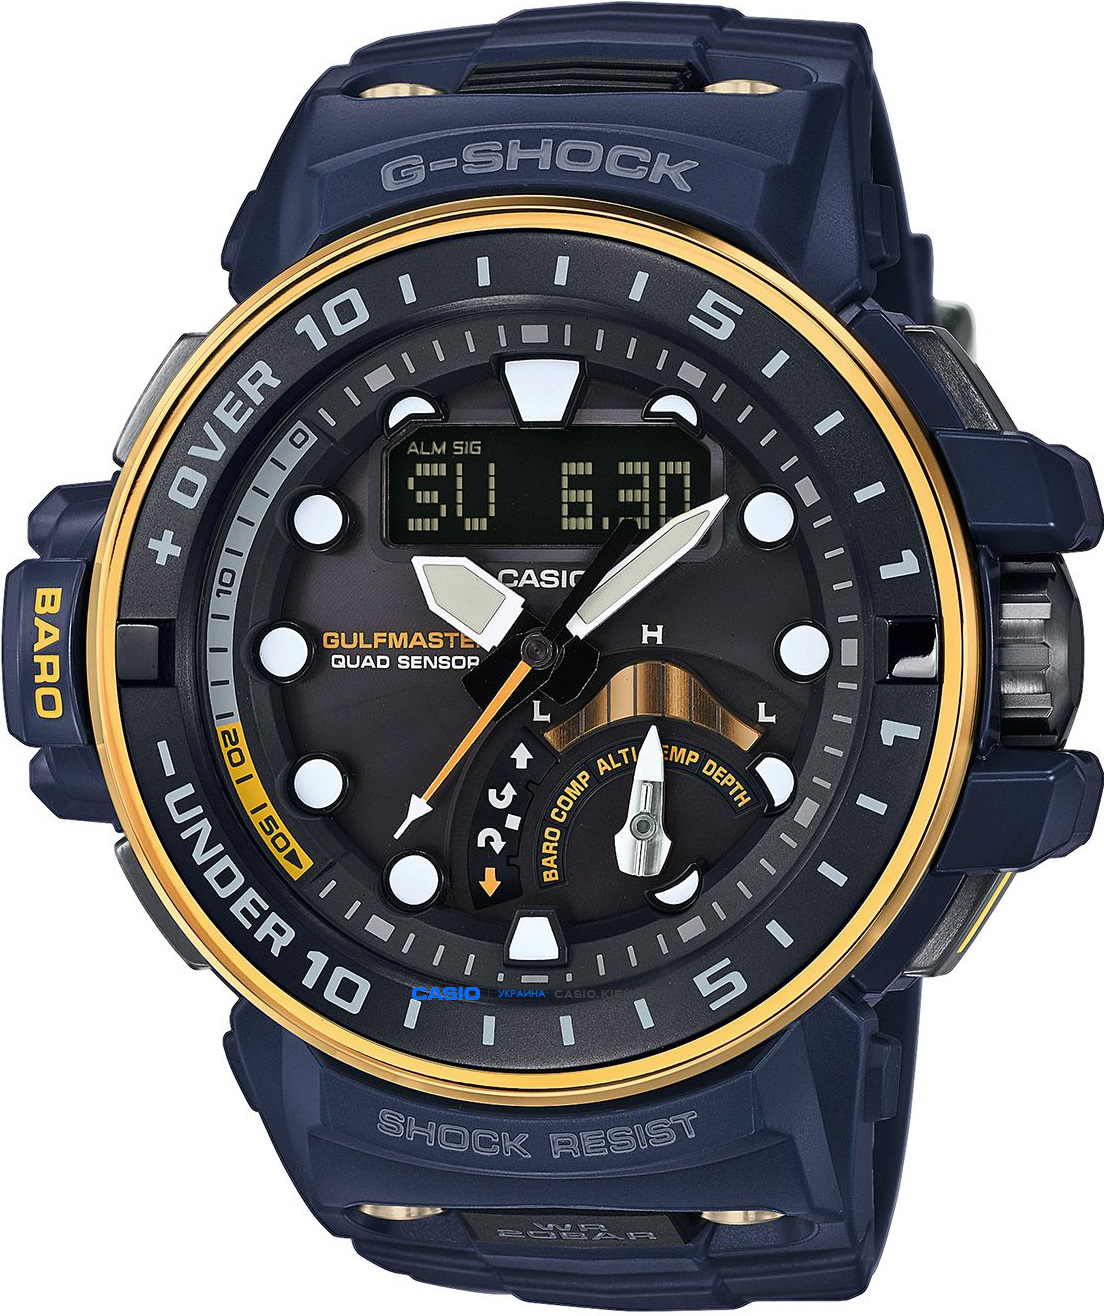 GWN-Q1000NV-2AER, Casio G-Shock